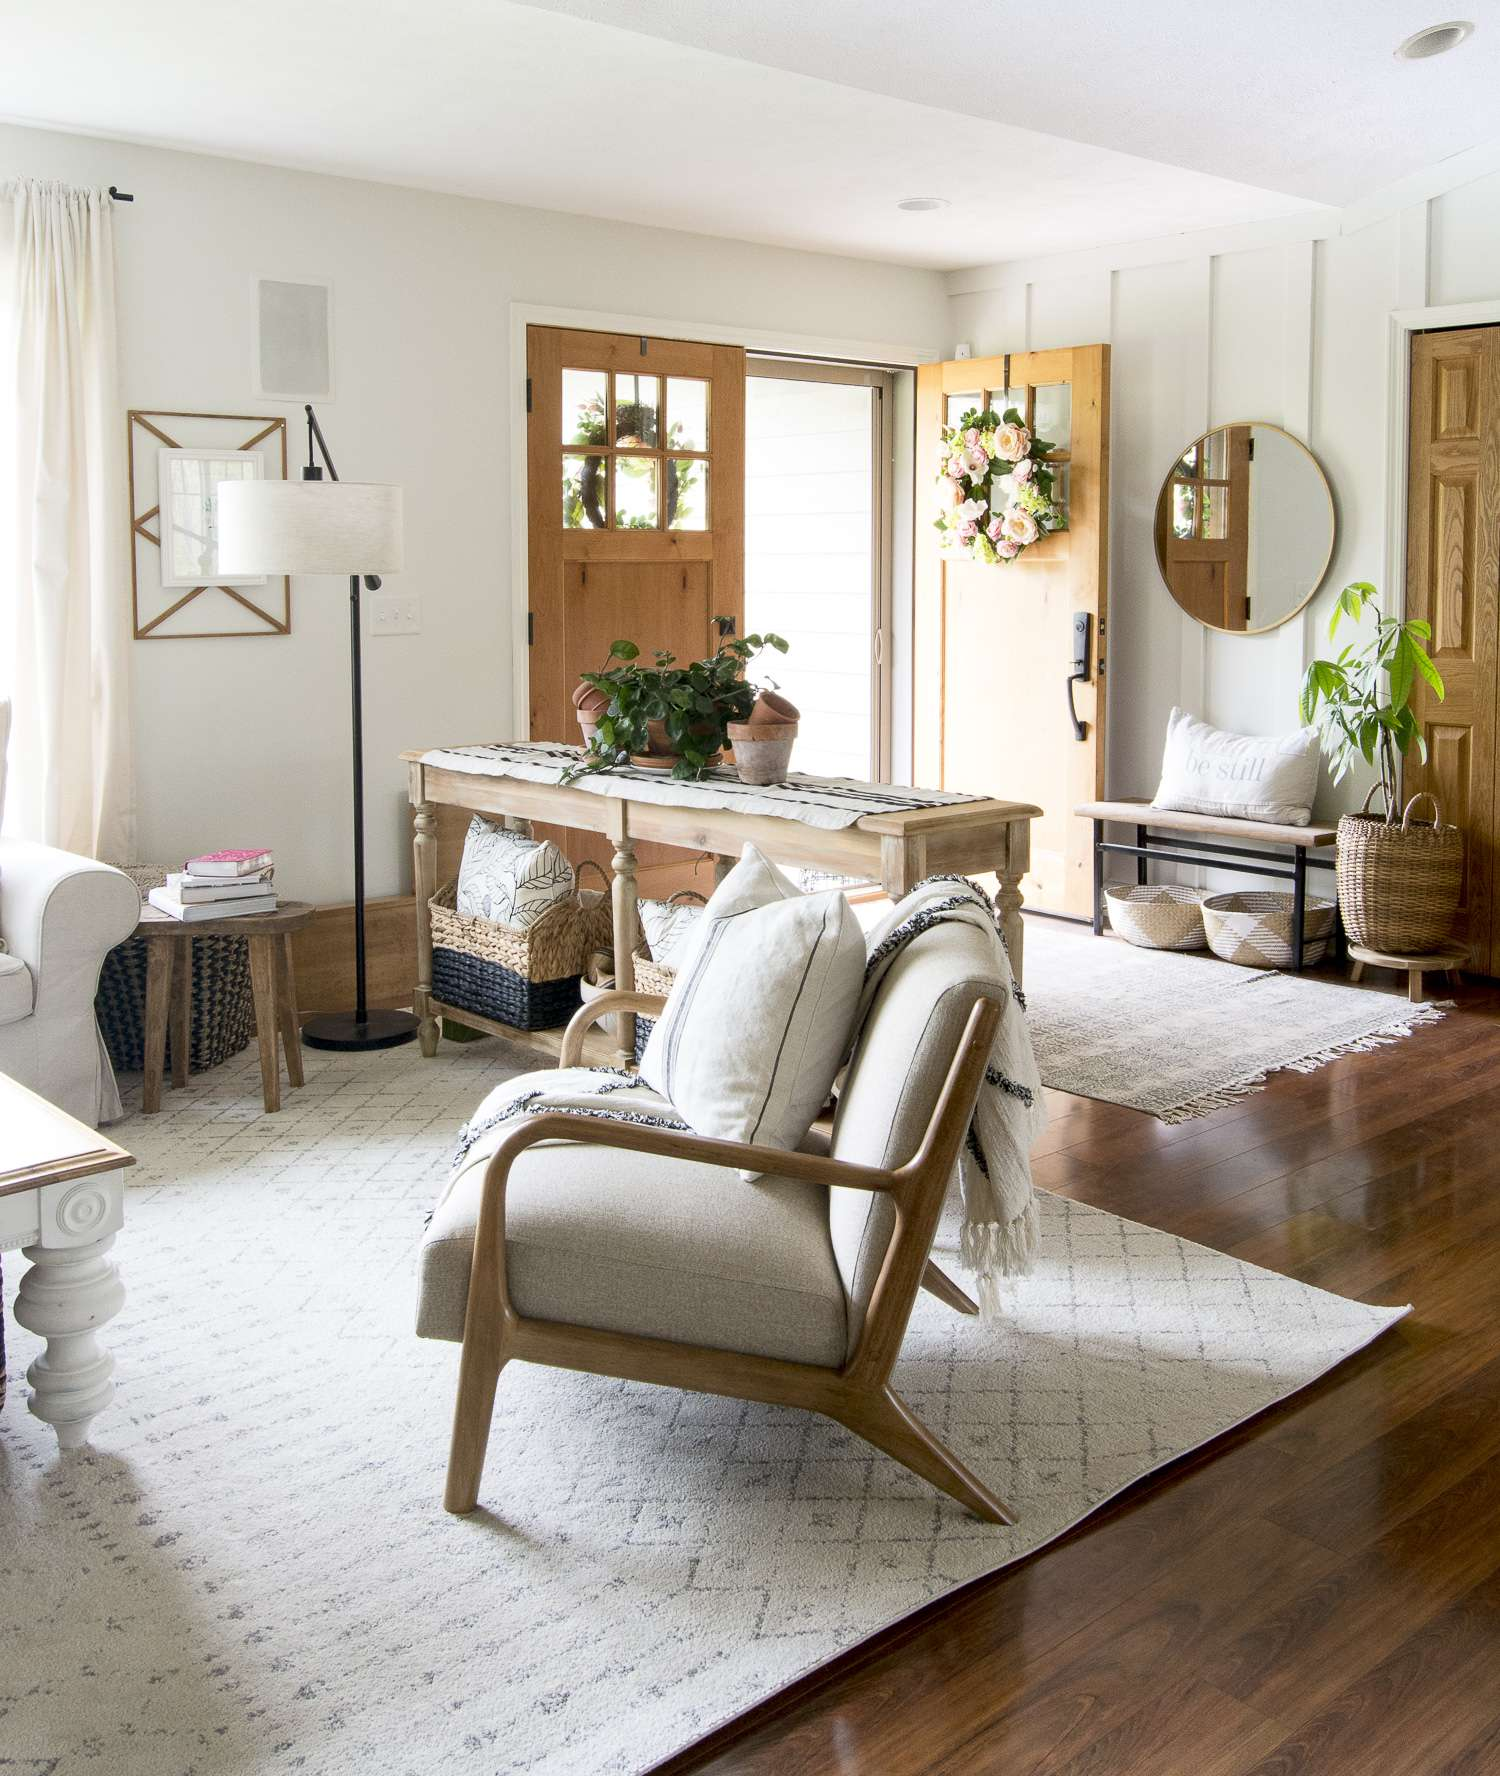 Do you love clean lines but crave cozy home decor? Learn how to get the modern farmouse living room look with simple design tips for the everyday home. #fromhousetohaven #modernfarmhouse #livingroomdecor